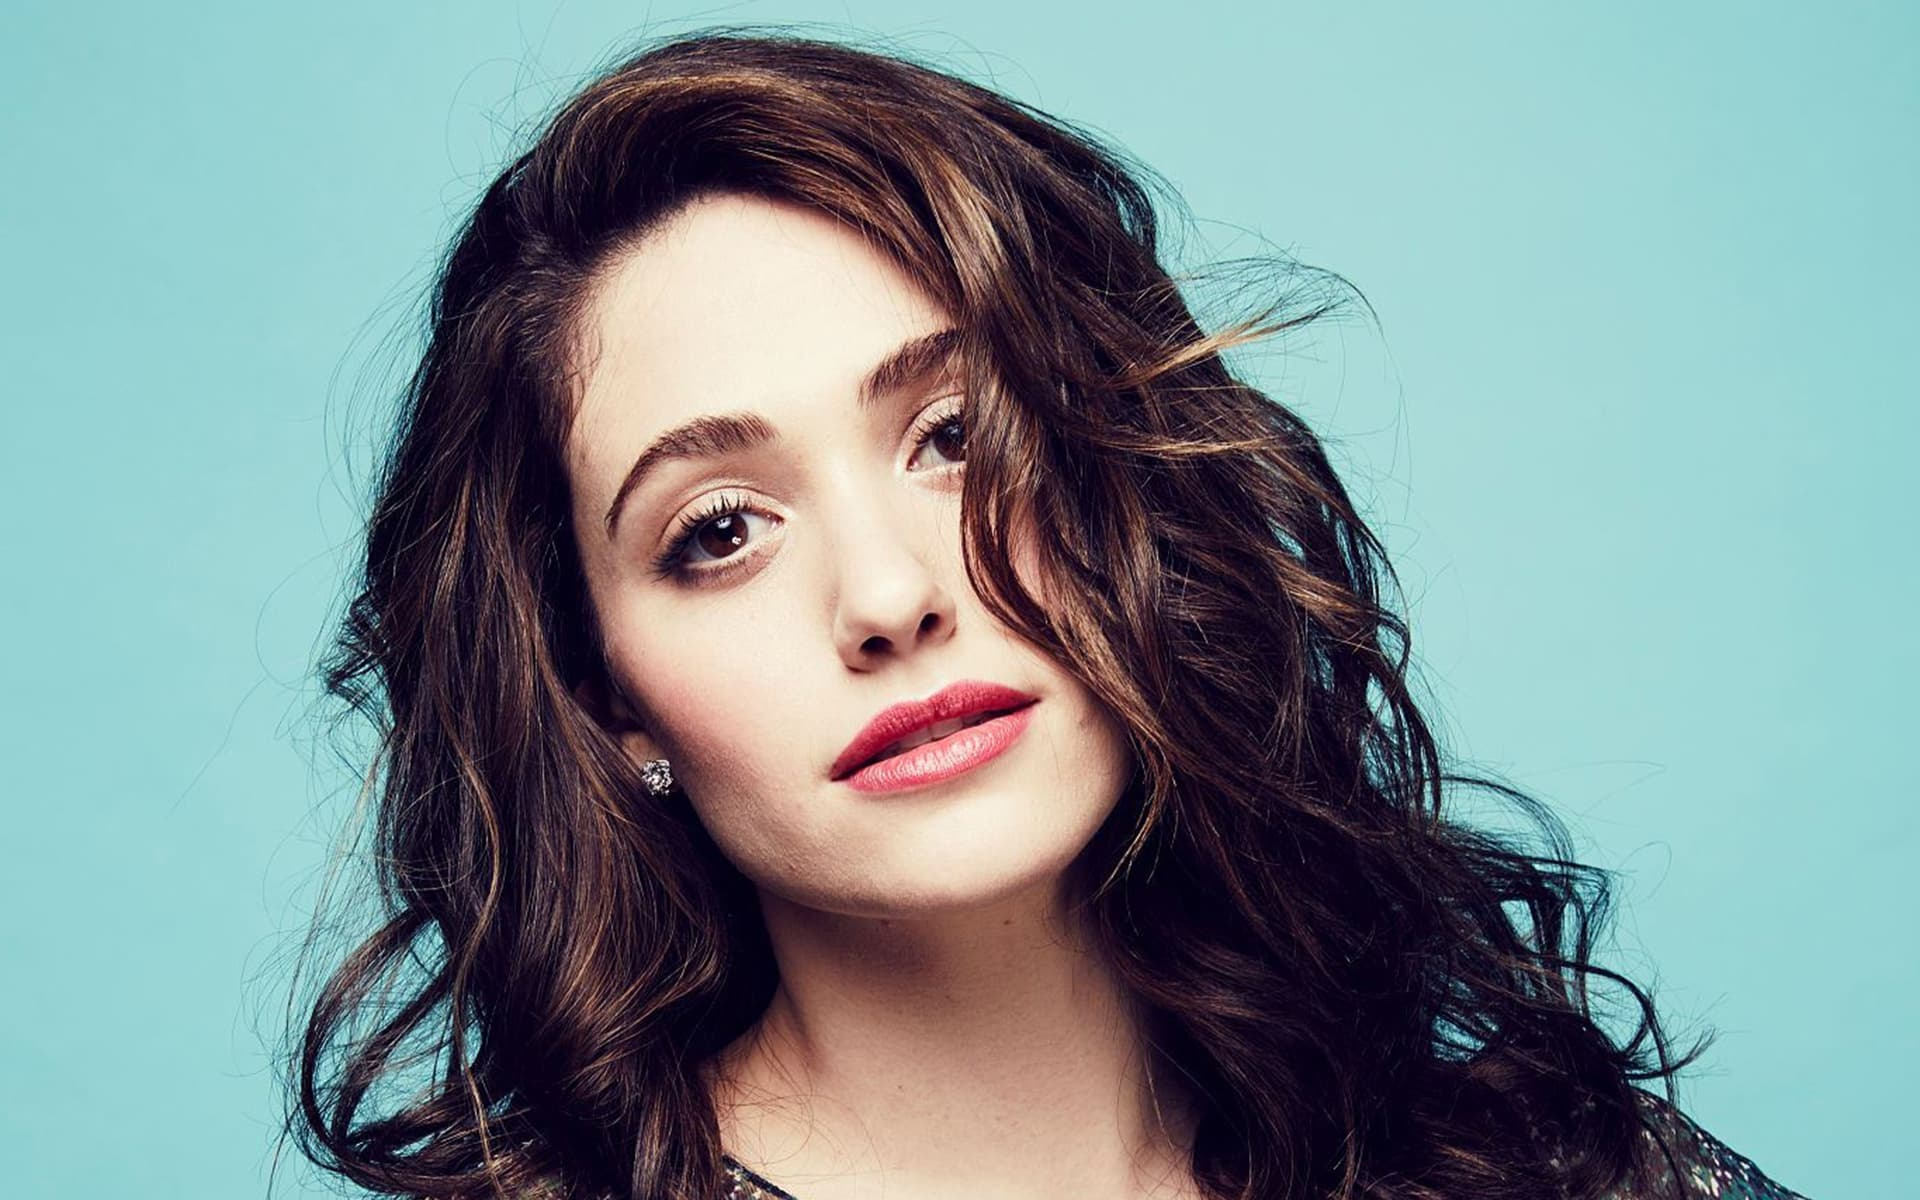 19+ Emmy Rossum wallpapers High Quality Resolution Download